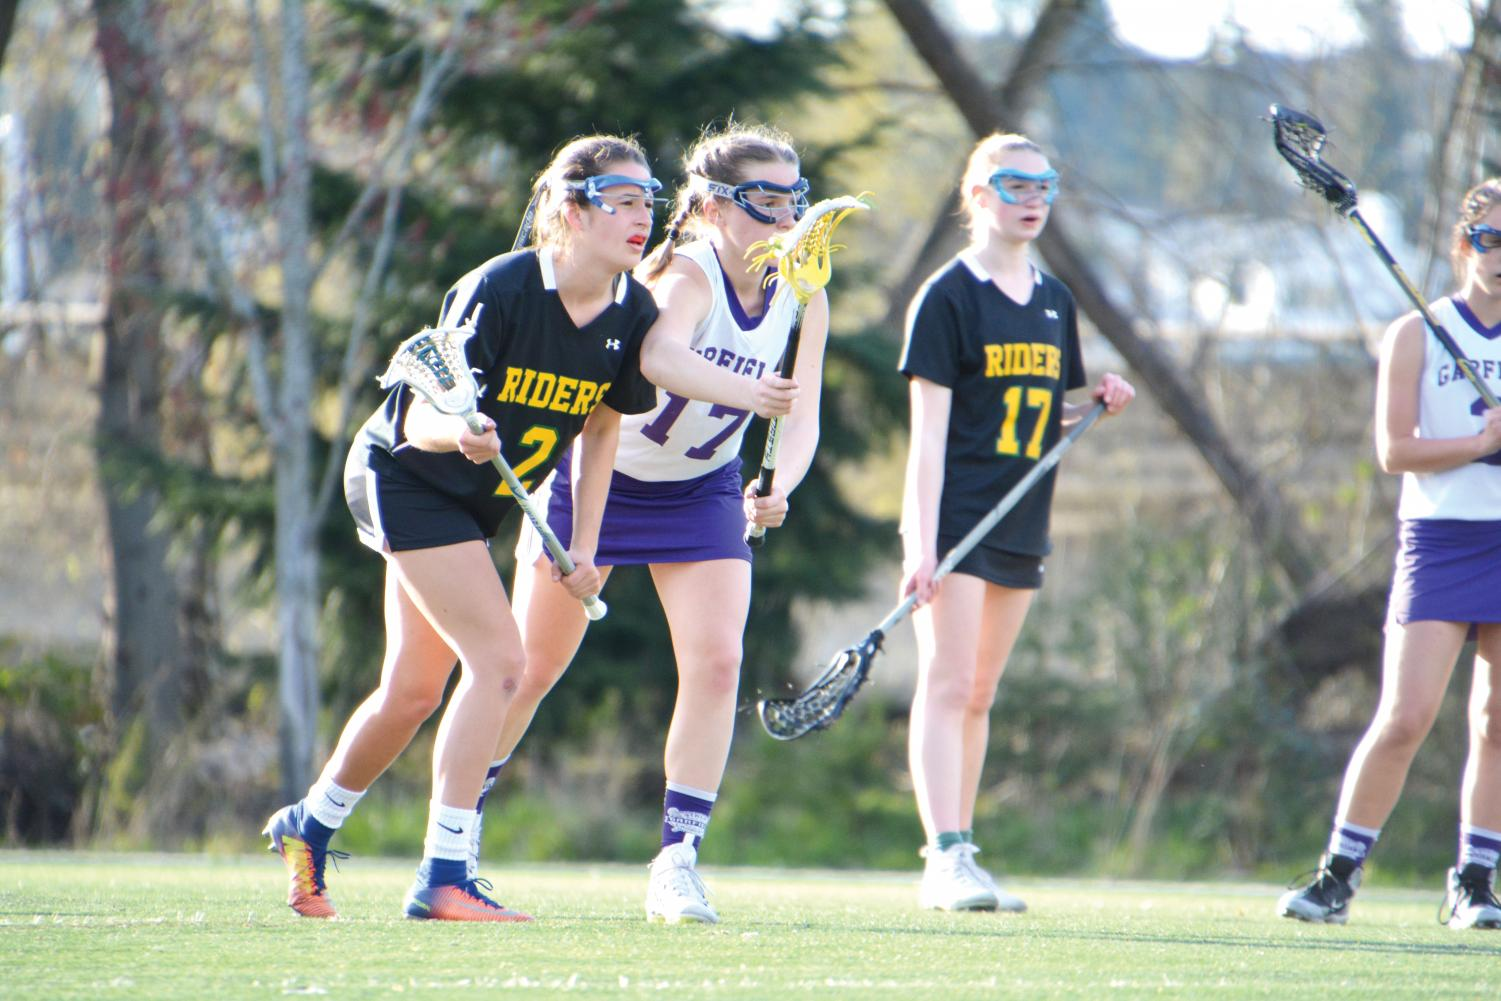 UPrep students who play lacrosse must find outside  schools who field teams. Senior  Courtney Zell, on the left, playing on the Roosevelt team against Garfield.